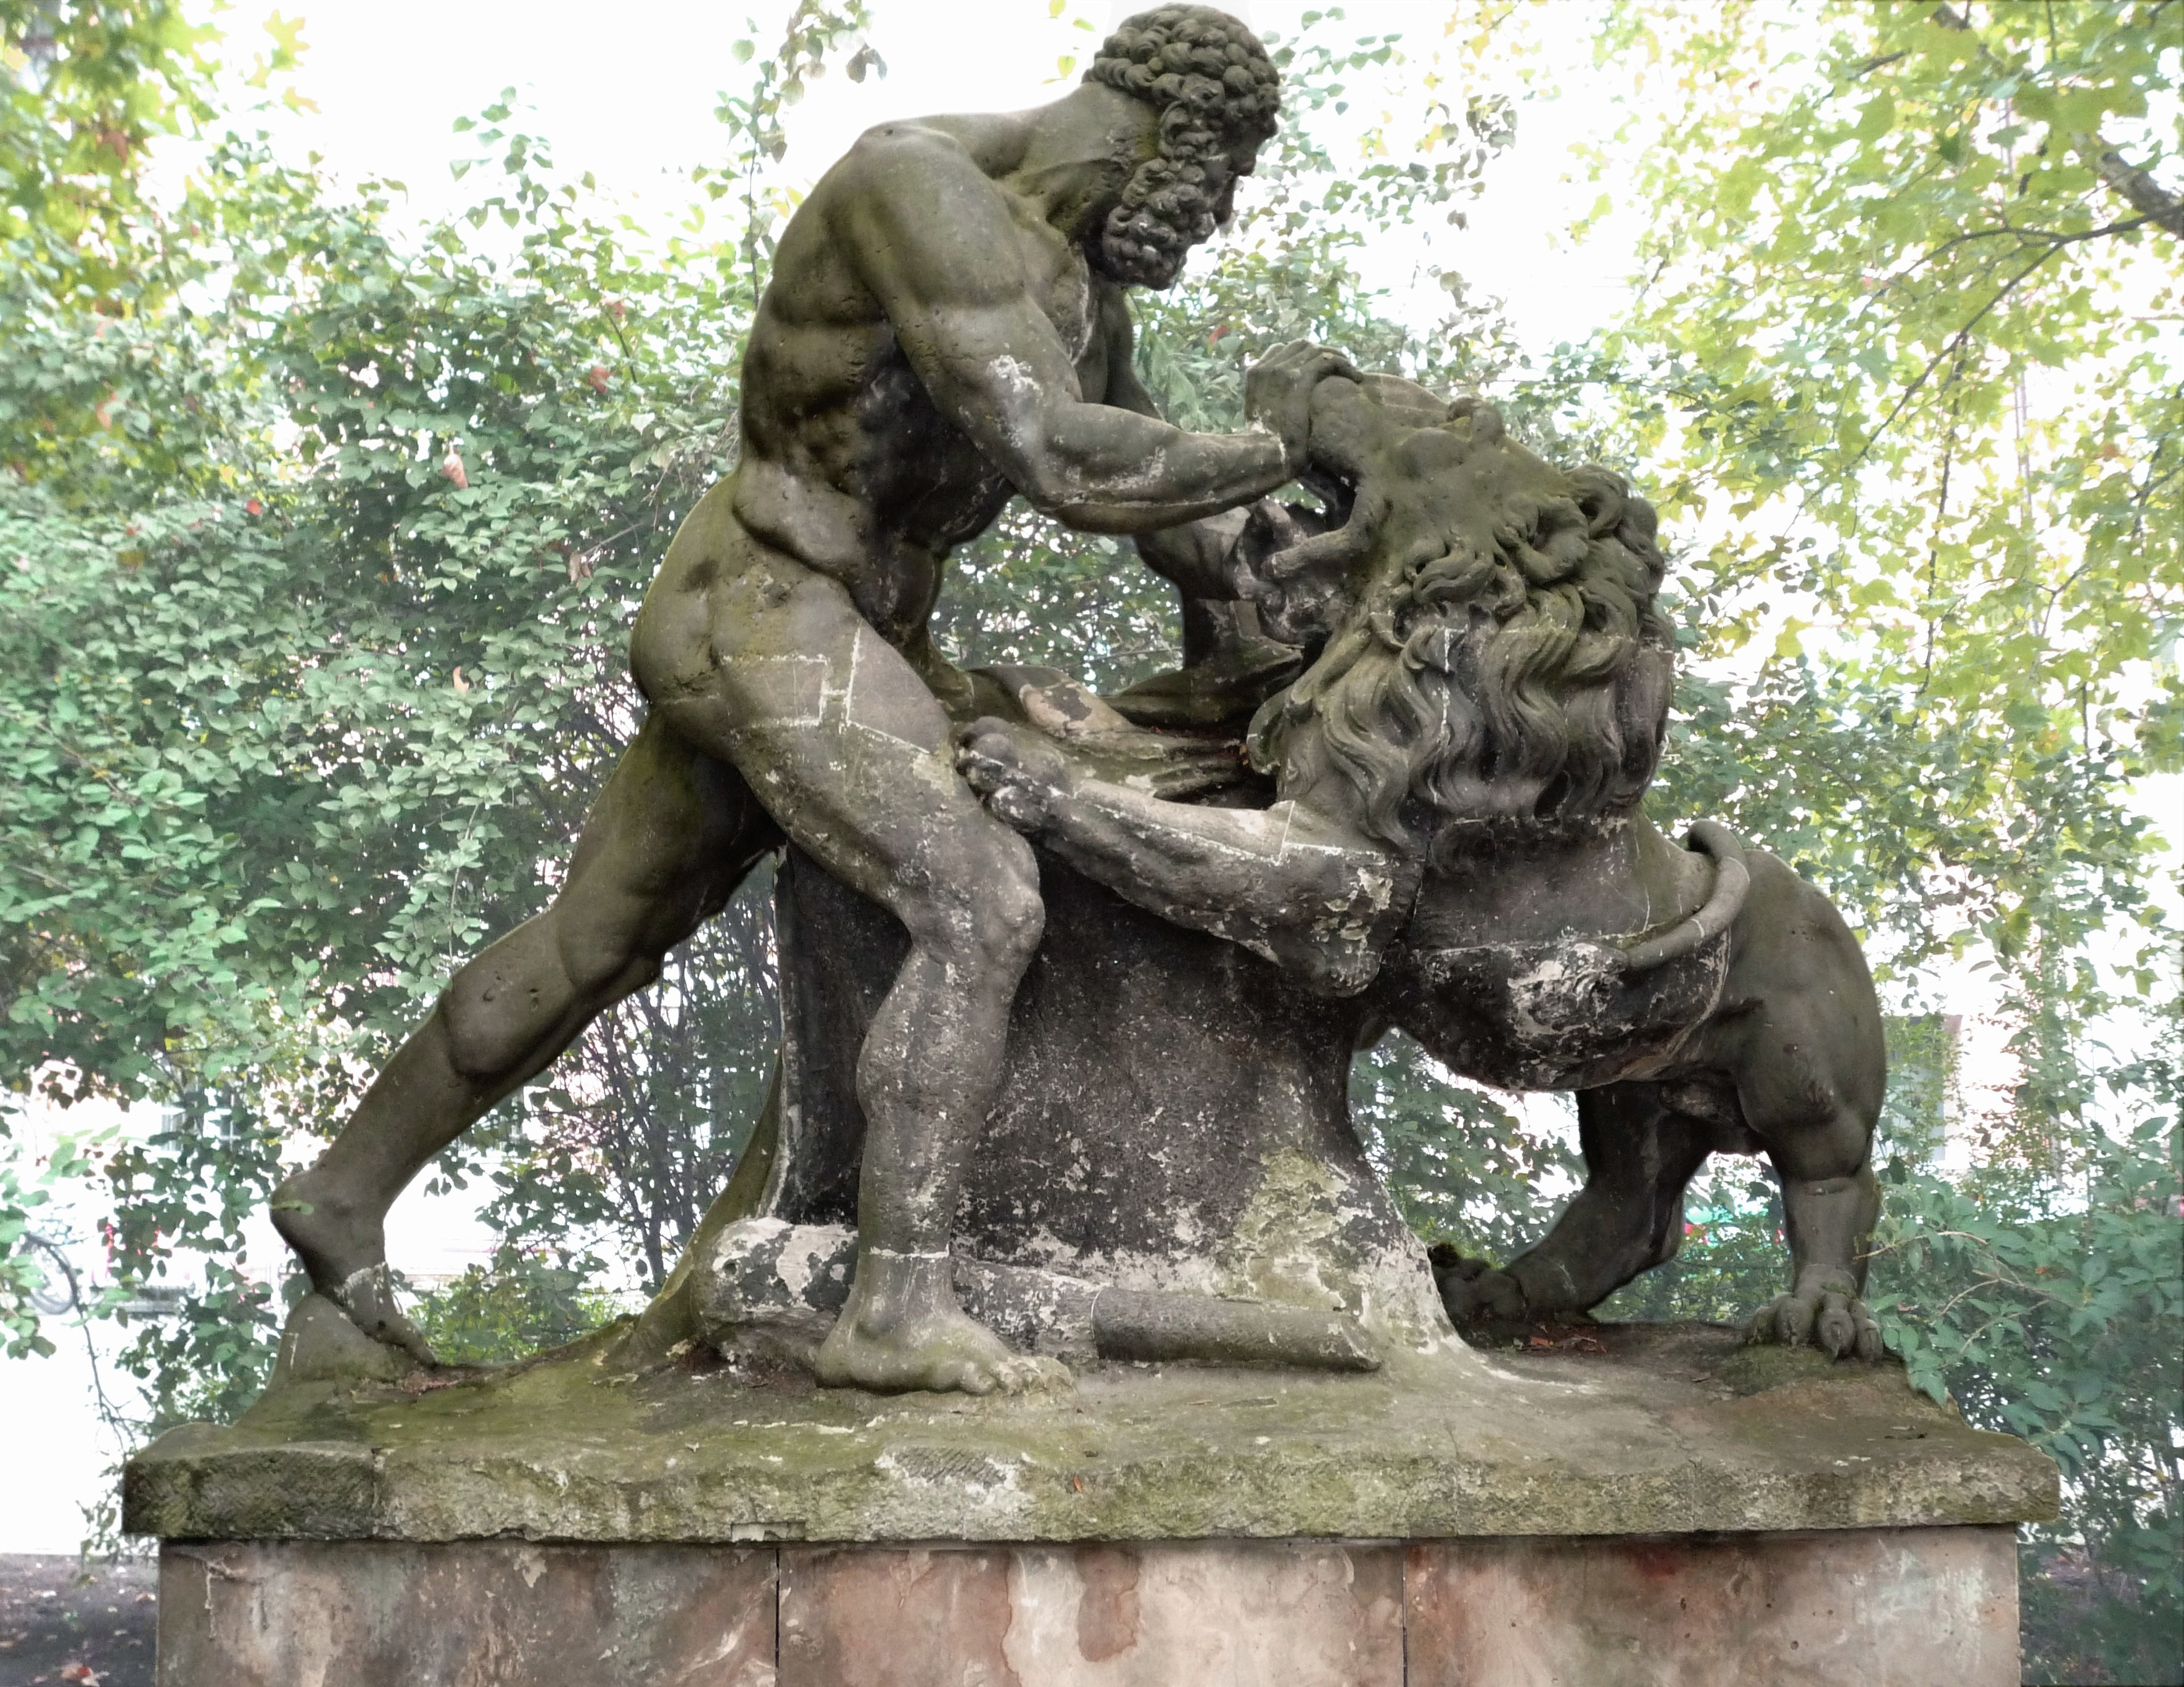 The Meaning Of The Labors Of Hercules According To Dr